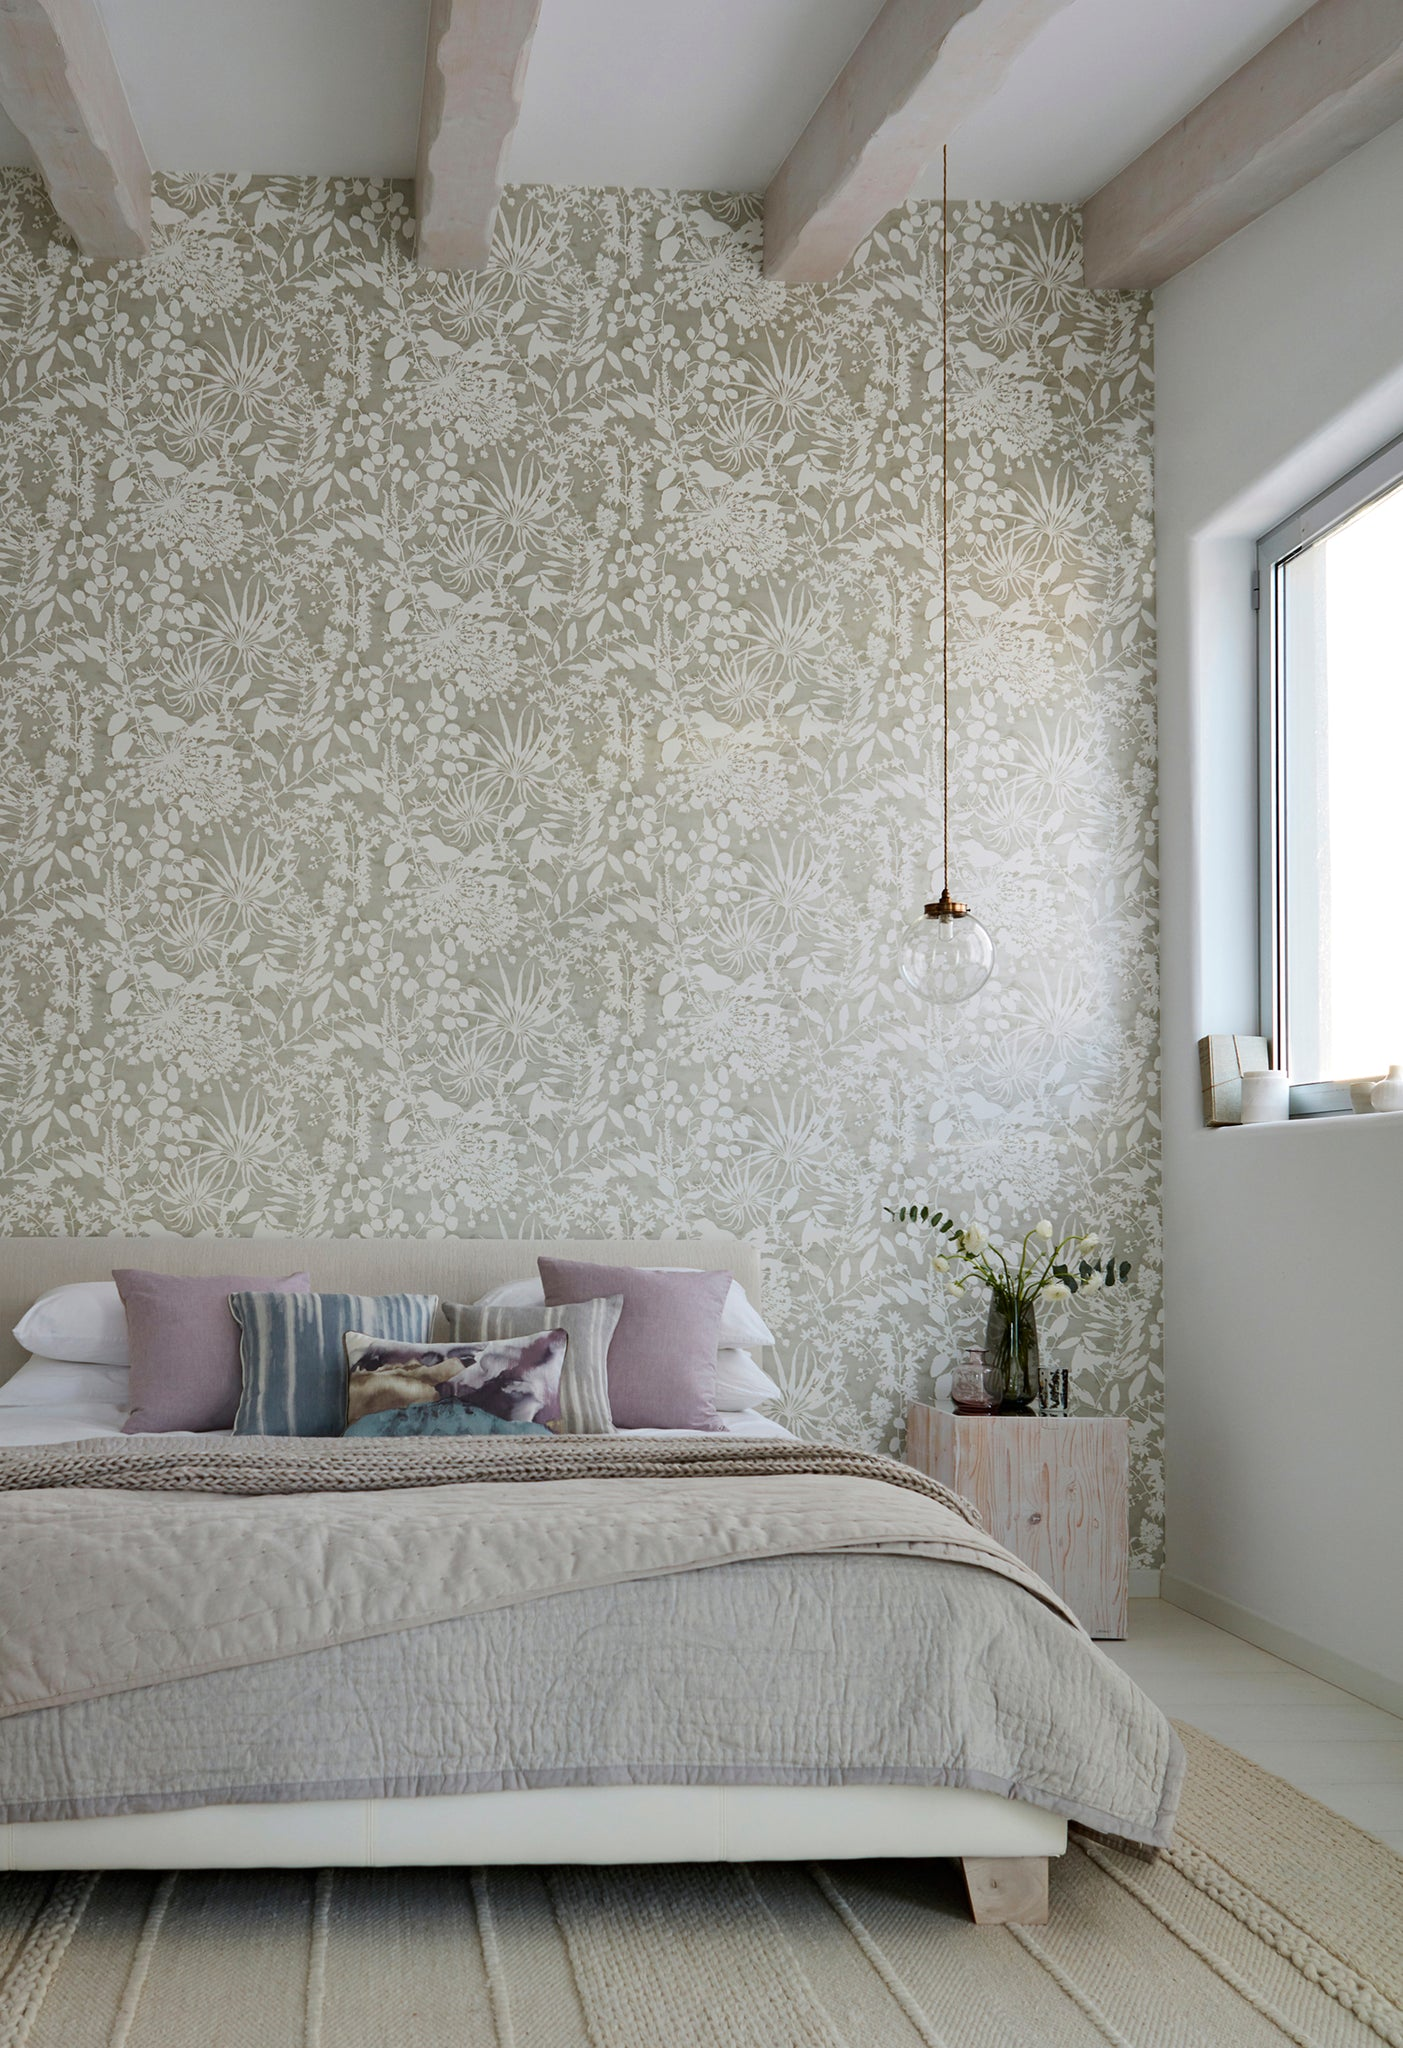 Coralline wallpaper by Harlequin